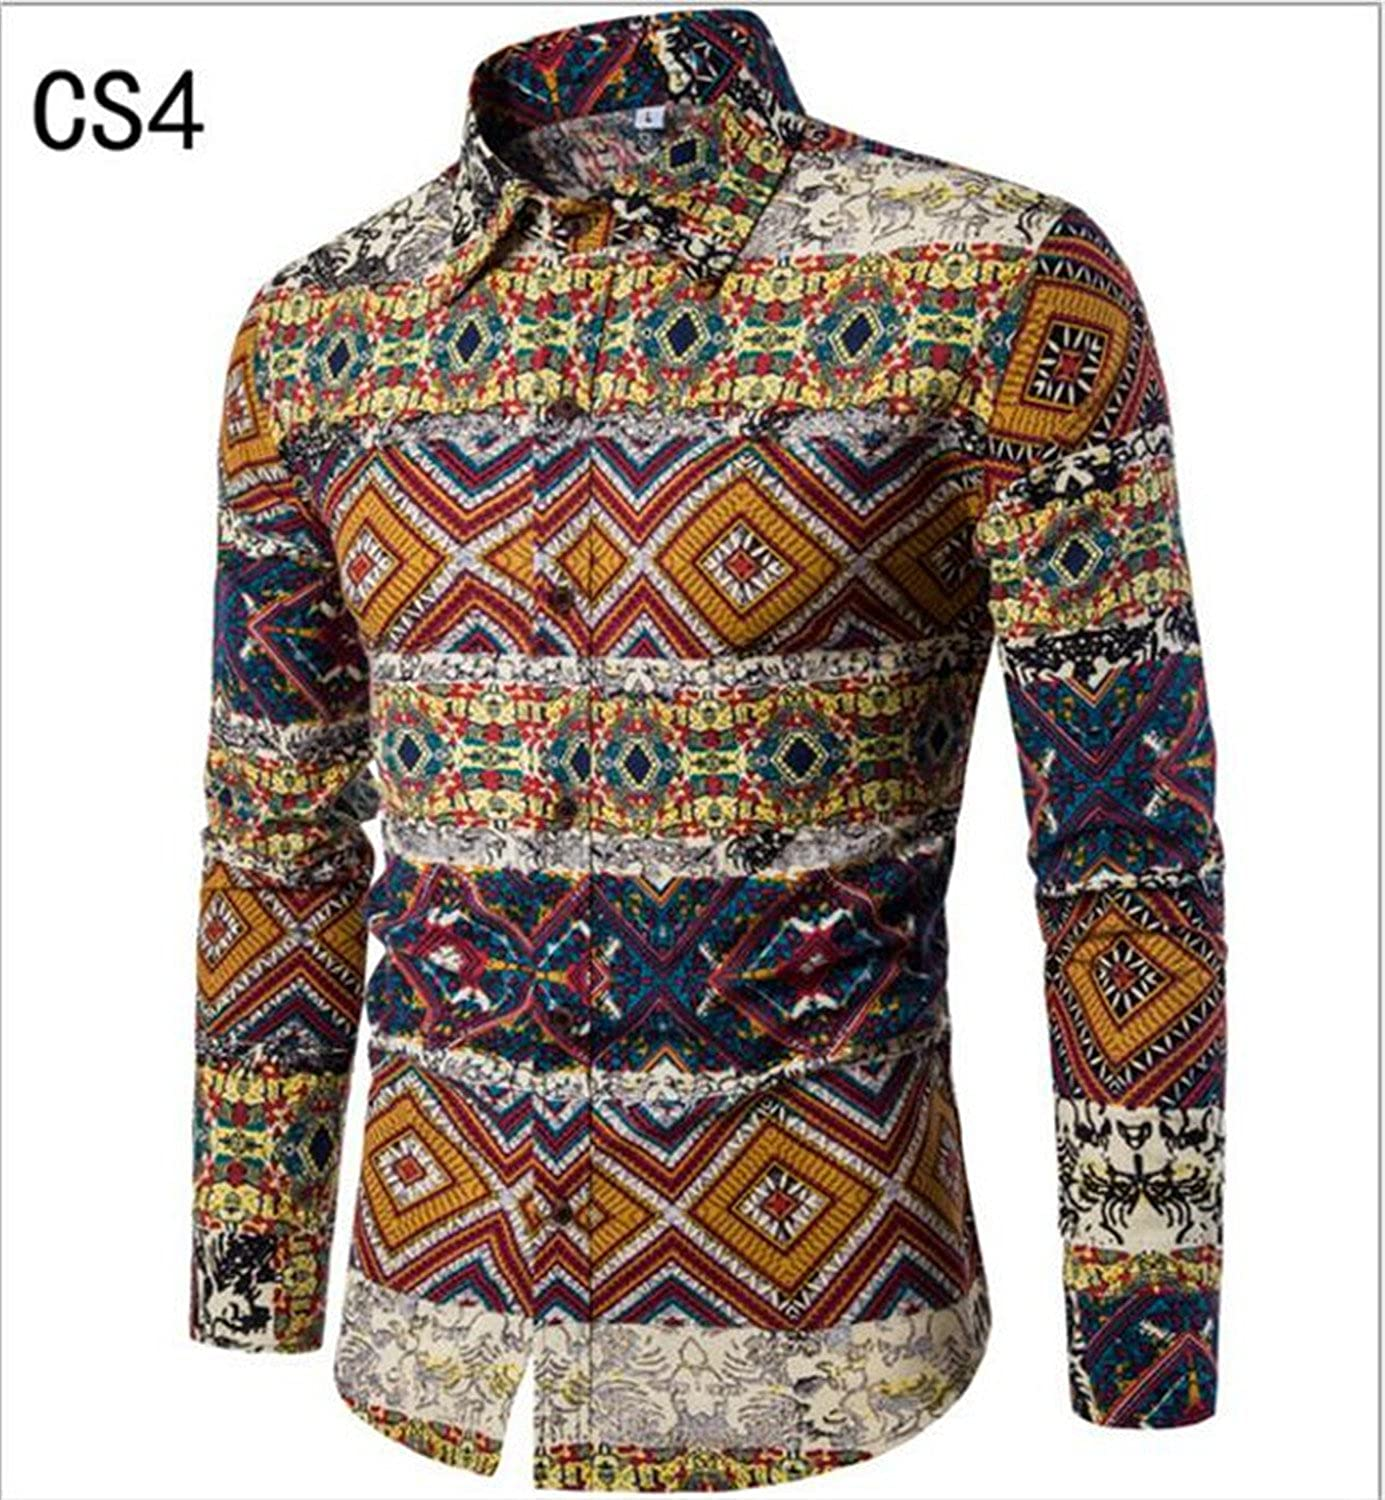 Sonjer New Special Offer Full Cotton Autumn New Fashion Flower Printed Long Sleeve Shirts Men Camisa Male Slim Vintage Casual Shirt Cs4 L at Amazon Mens ...